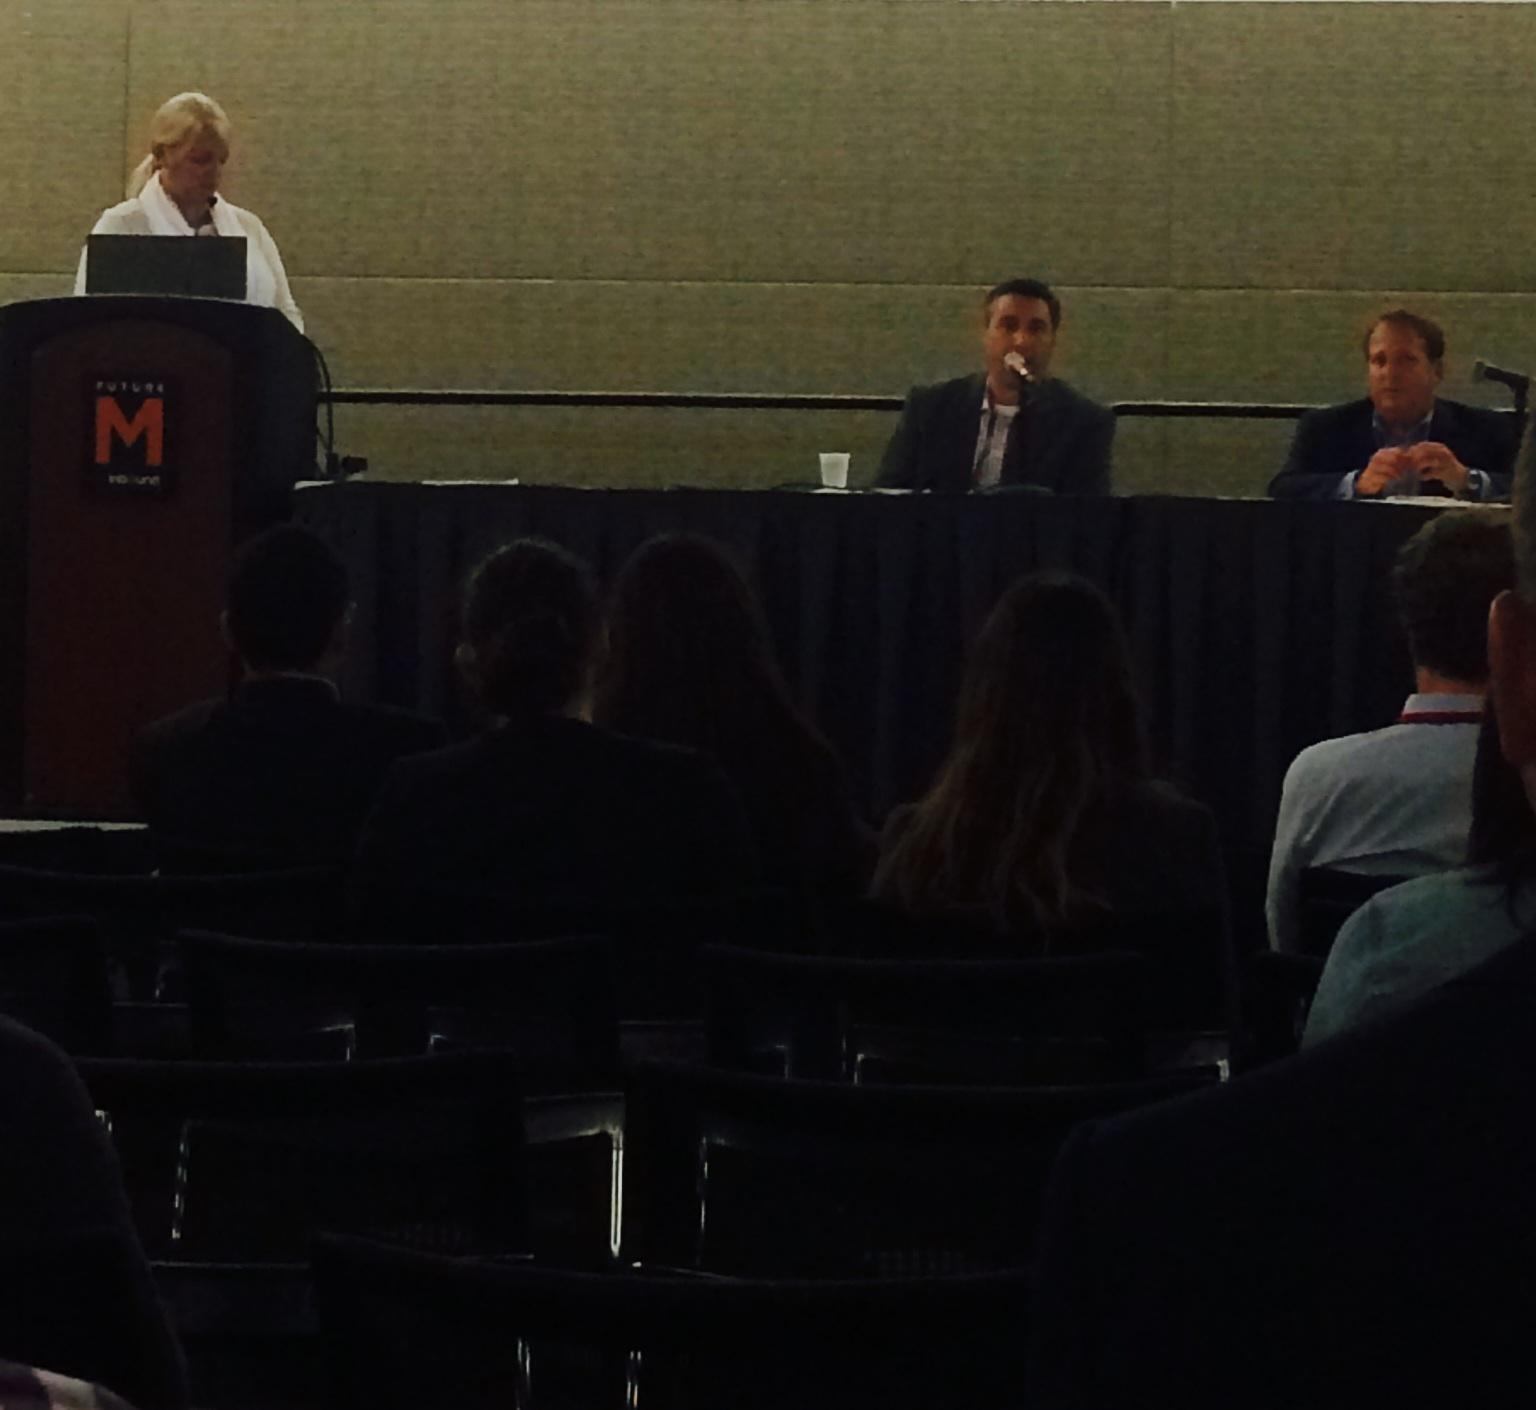 RT @visiblemeasures: @GinnyMarvin @614GroupRob & @Digitas discuss how programmatic is changing how media is traded  #FutureM #INBOUND14 htt…